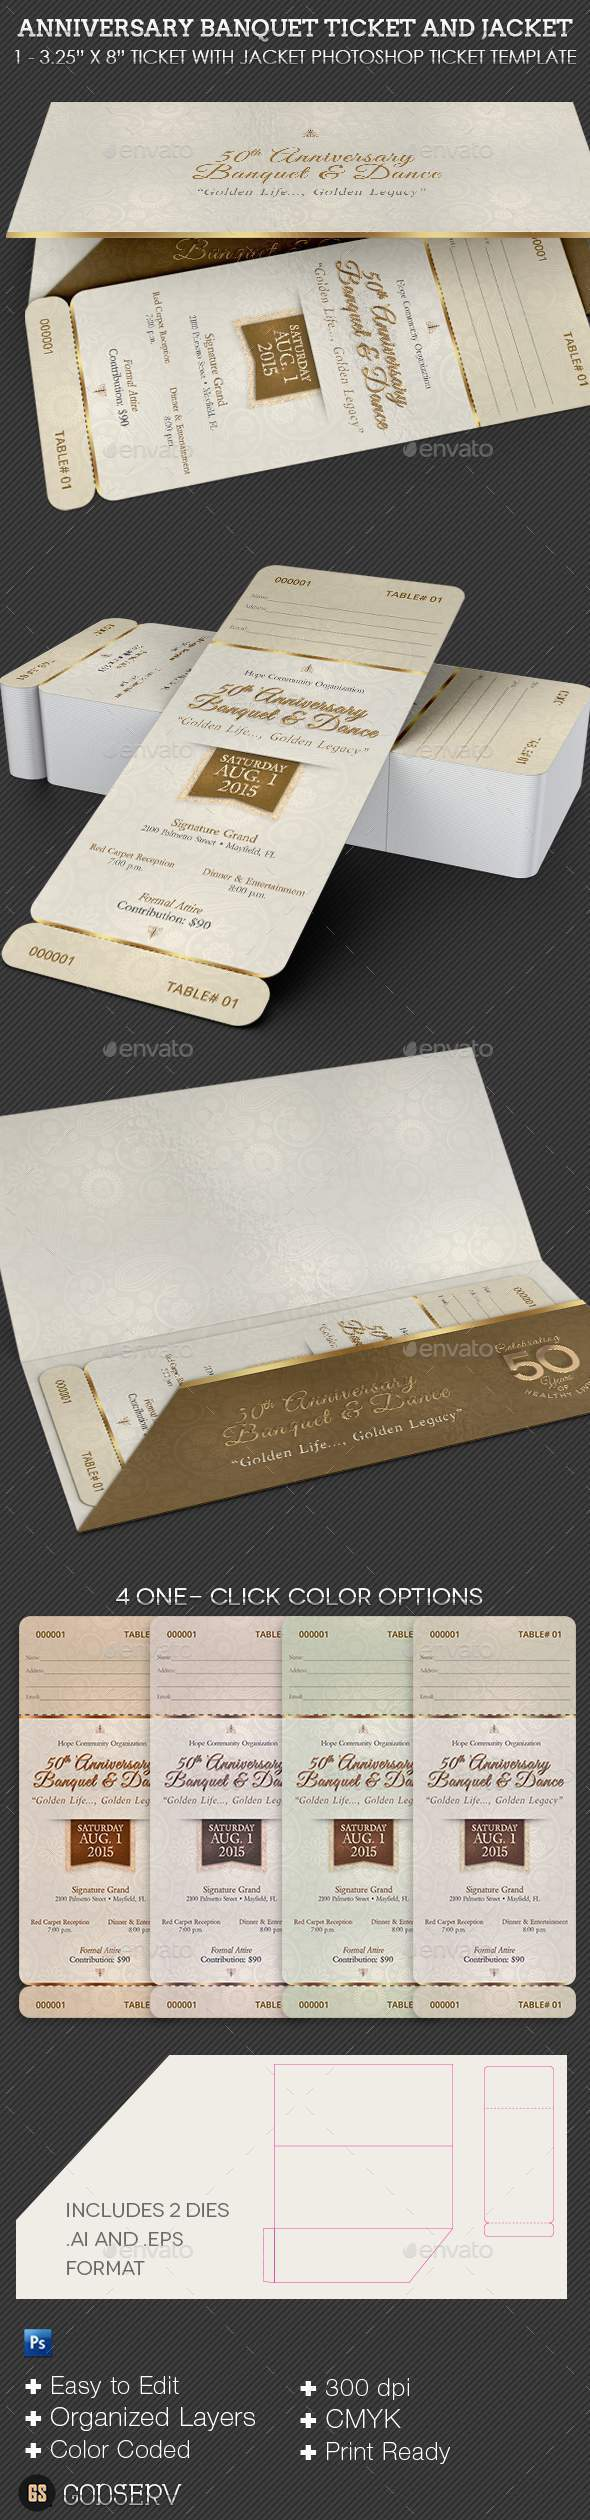 GraphicRiver Anniversary Banquet Ticket and Jacket Template 11851310